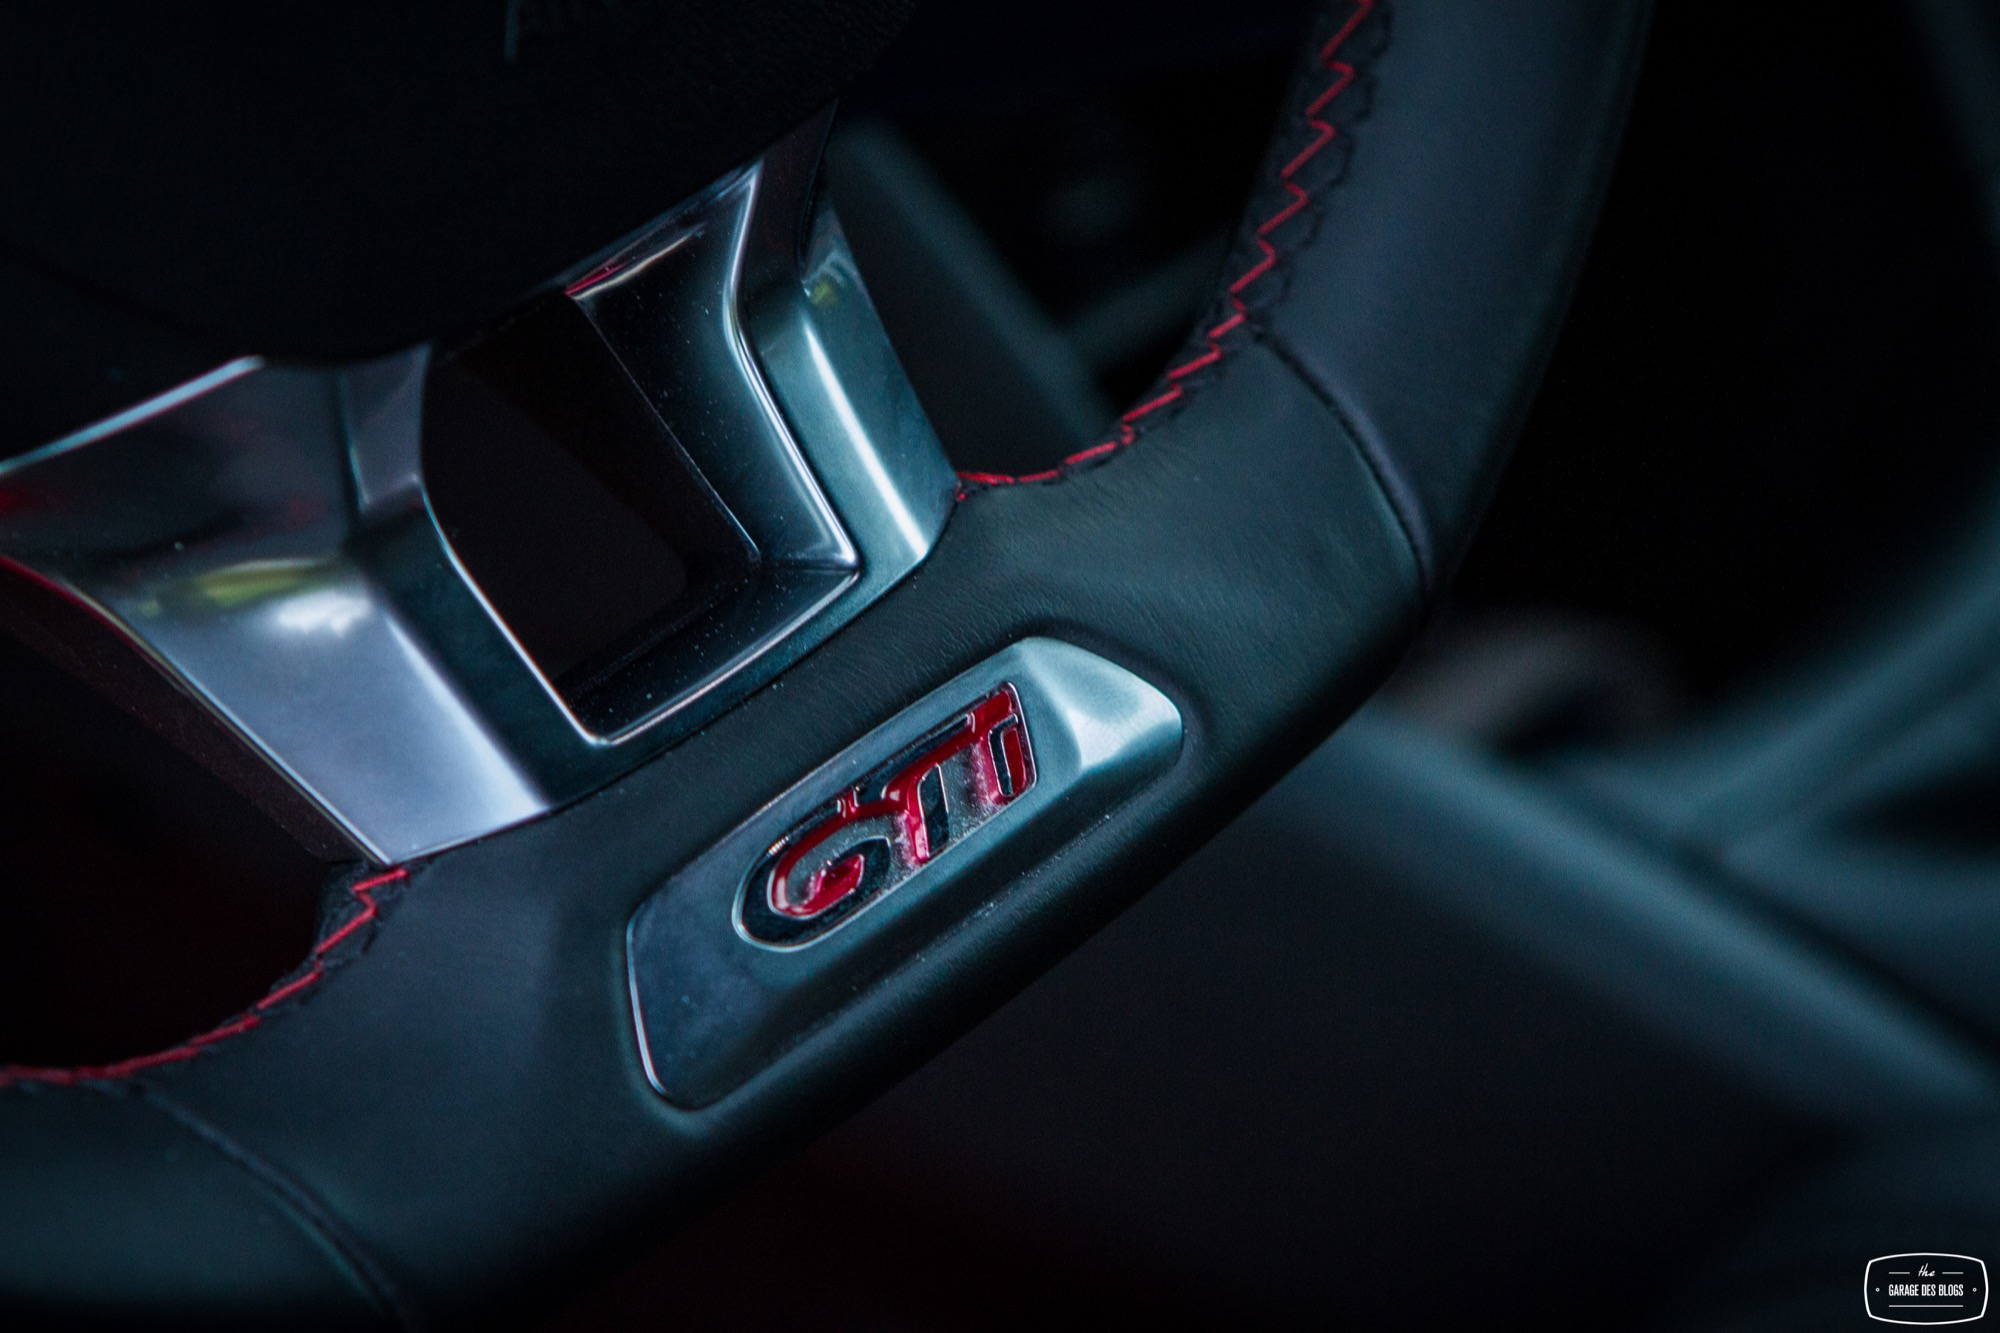 Essai peugeot 208 gti 30th interieur 22 le blog de viinz for Interieur 208 gti